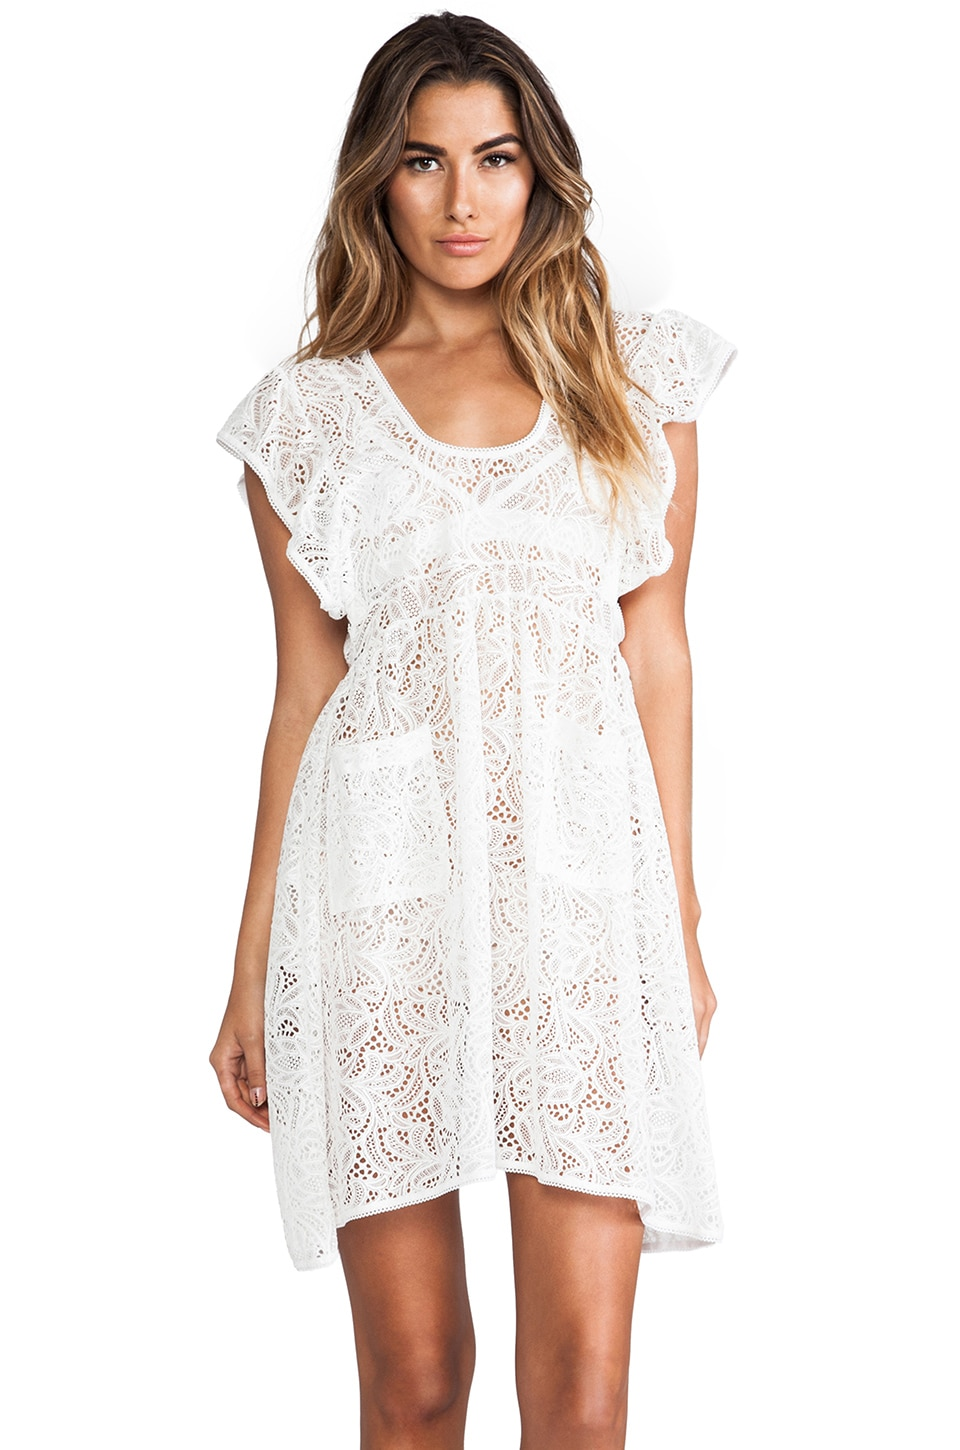 For Love & Lemons Ain't No Wifey Apron in Ivory